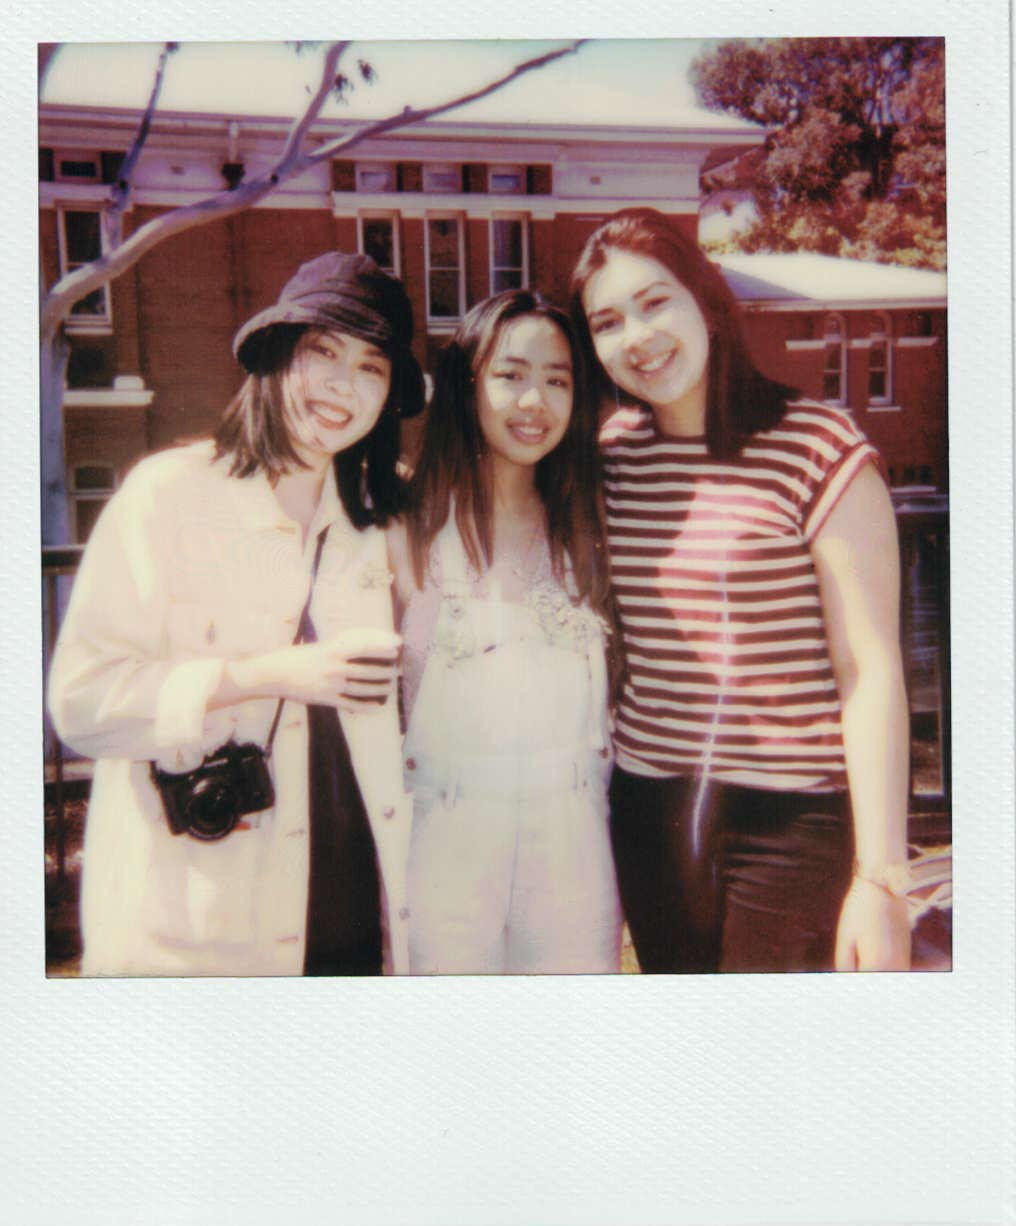 From left to right: Yoshika, Ria and Cecile. Taken on Ria's Polaroid at the Creatives Picnic.